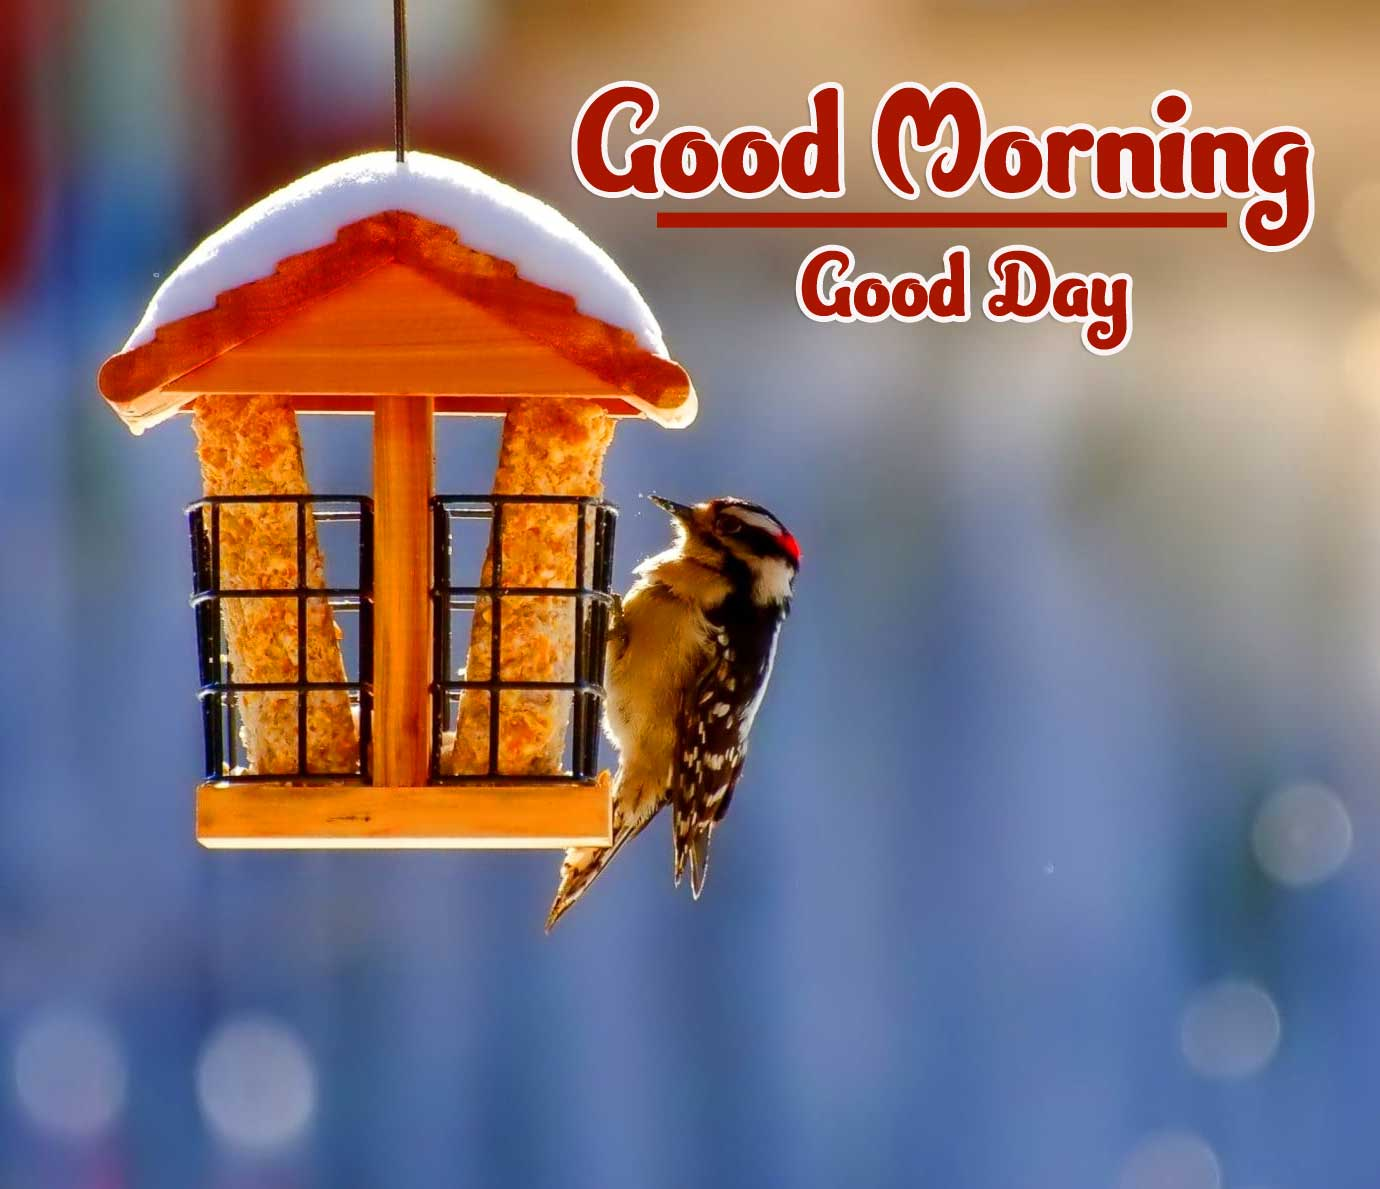 Good Morning Photo Wallpaper for Whatsapp